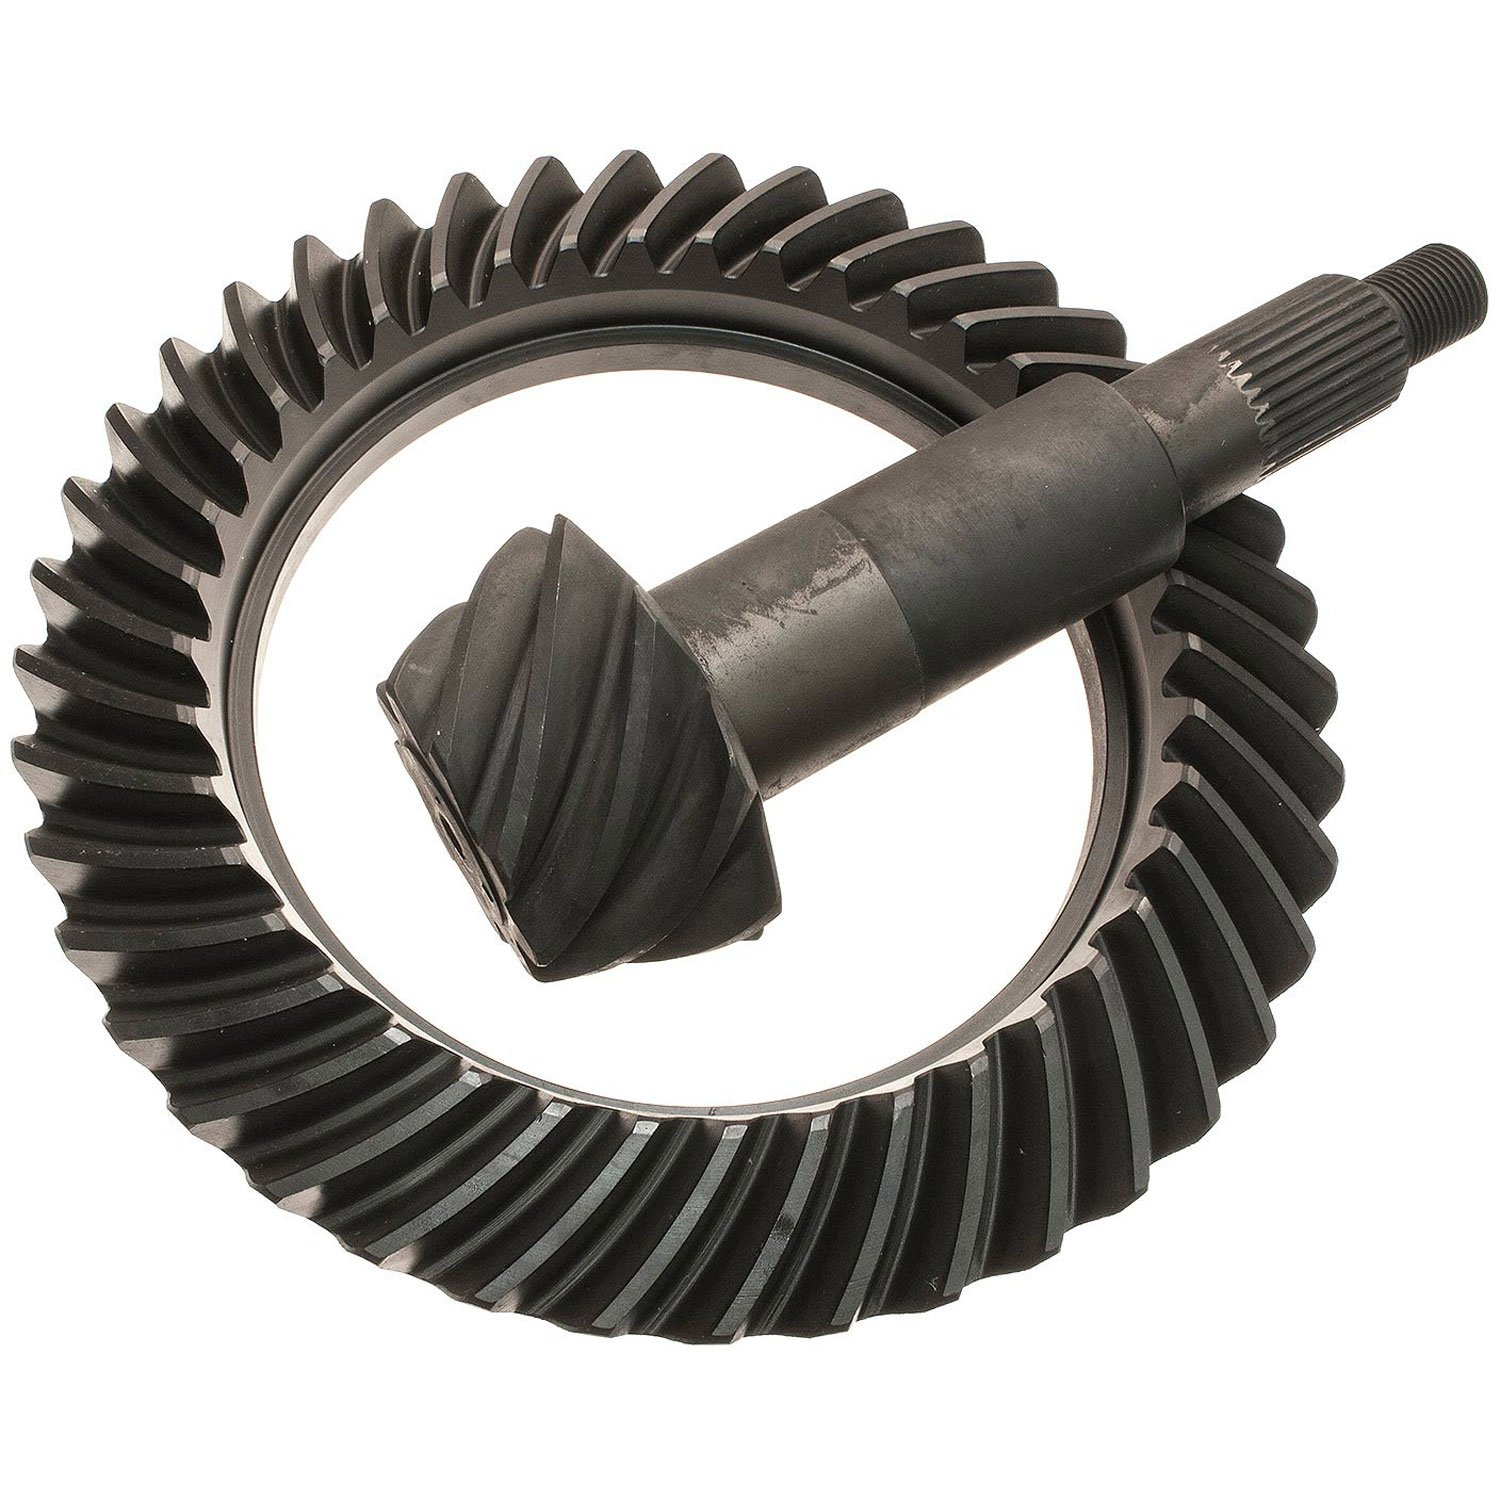 Motive Gear D70-488 Ring and Pinion (DANA 70 Style, 4.88 Ratio)